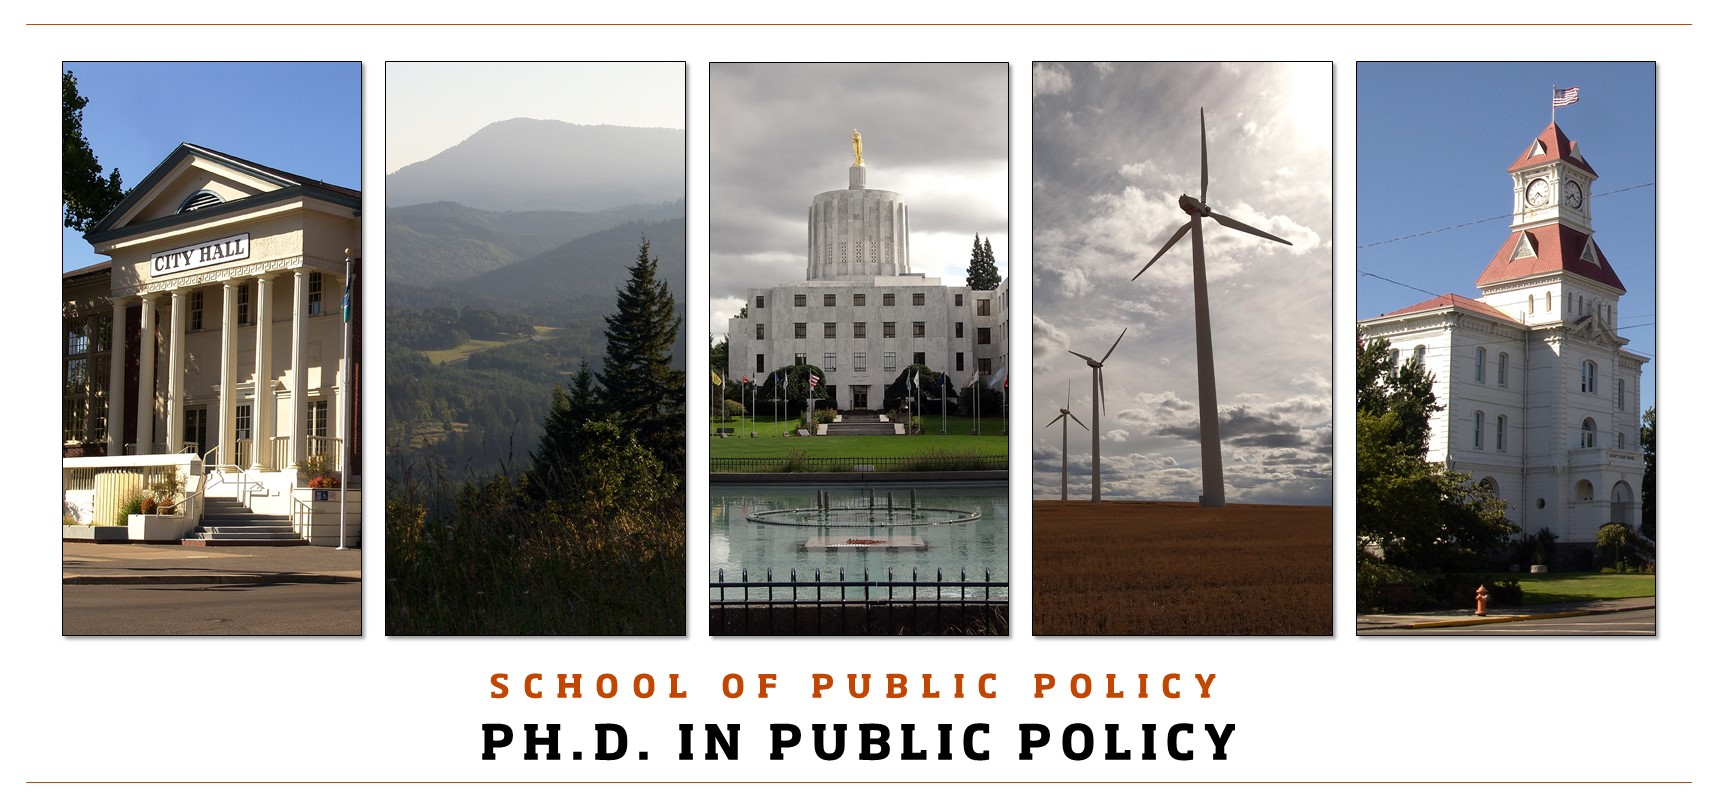 School of Public Policy PhD in Public Policy